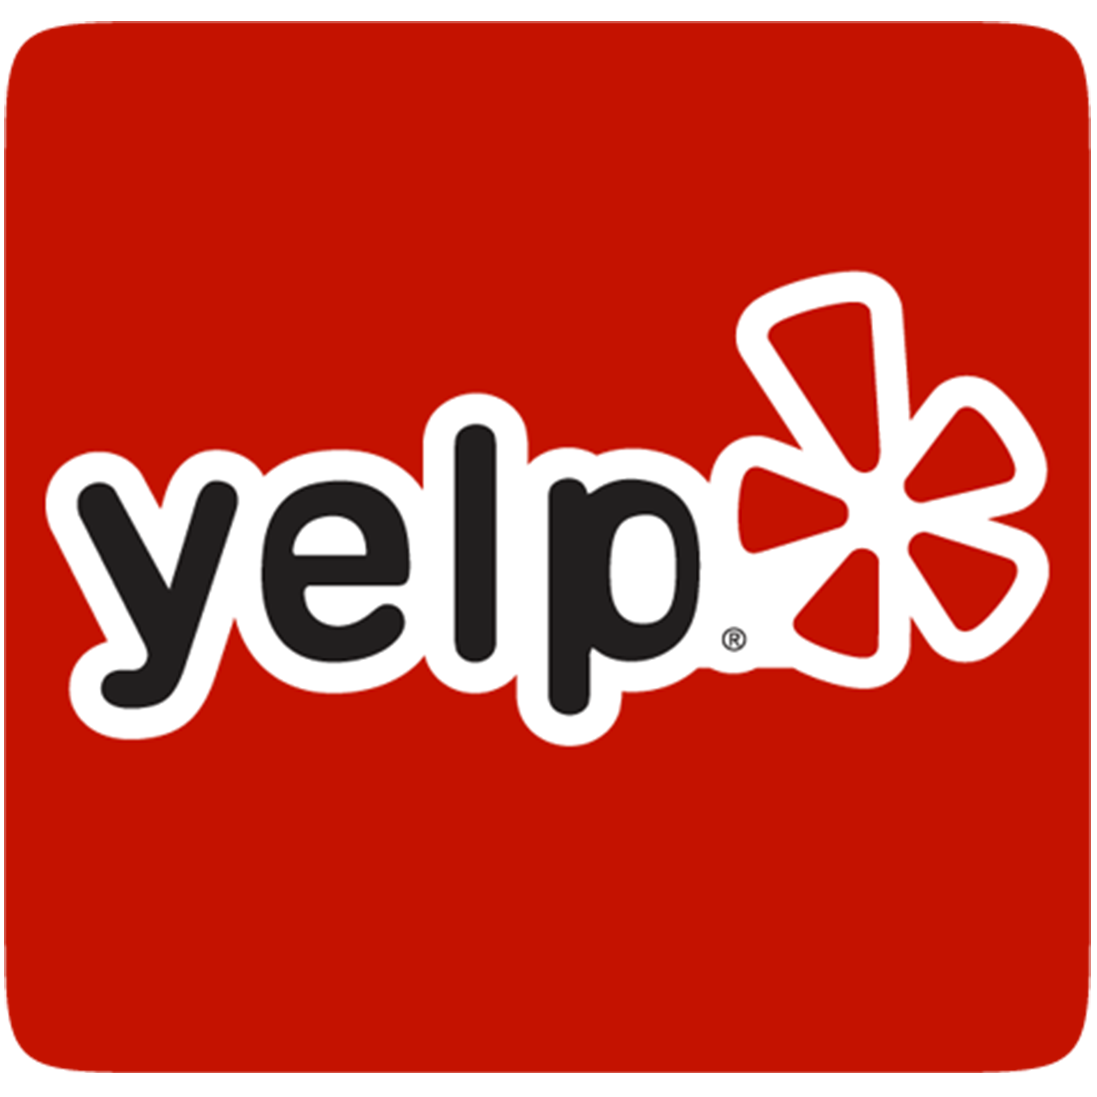 Weirs Appliance Reviews on Yelp